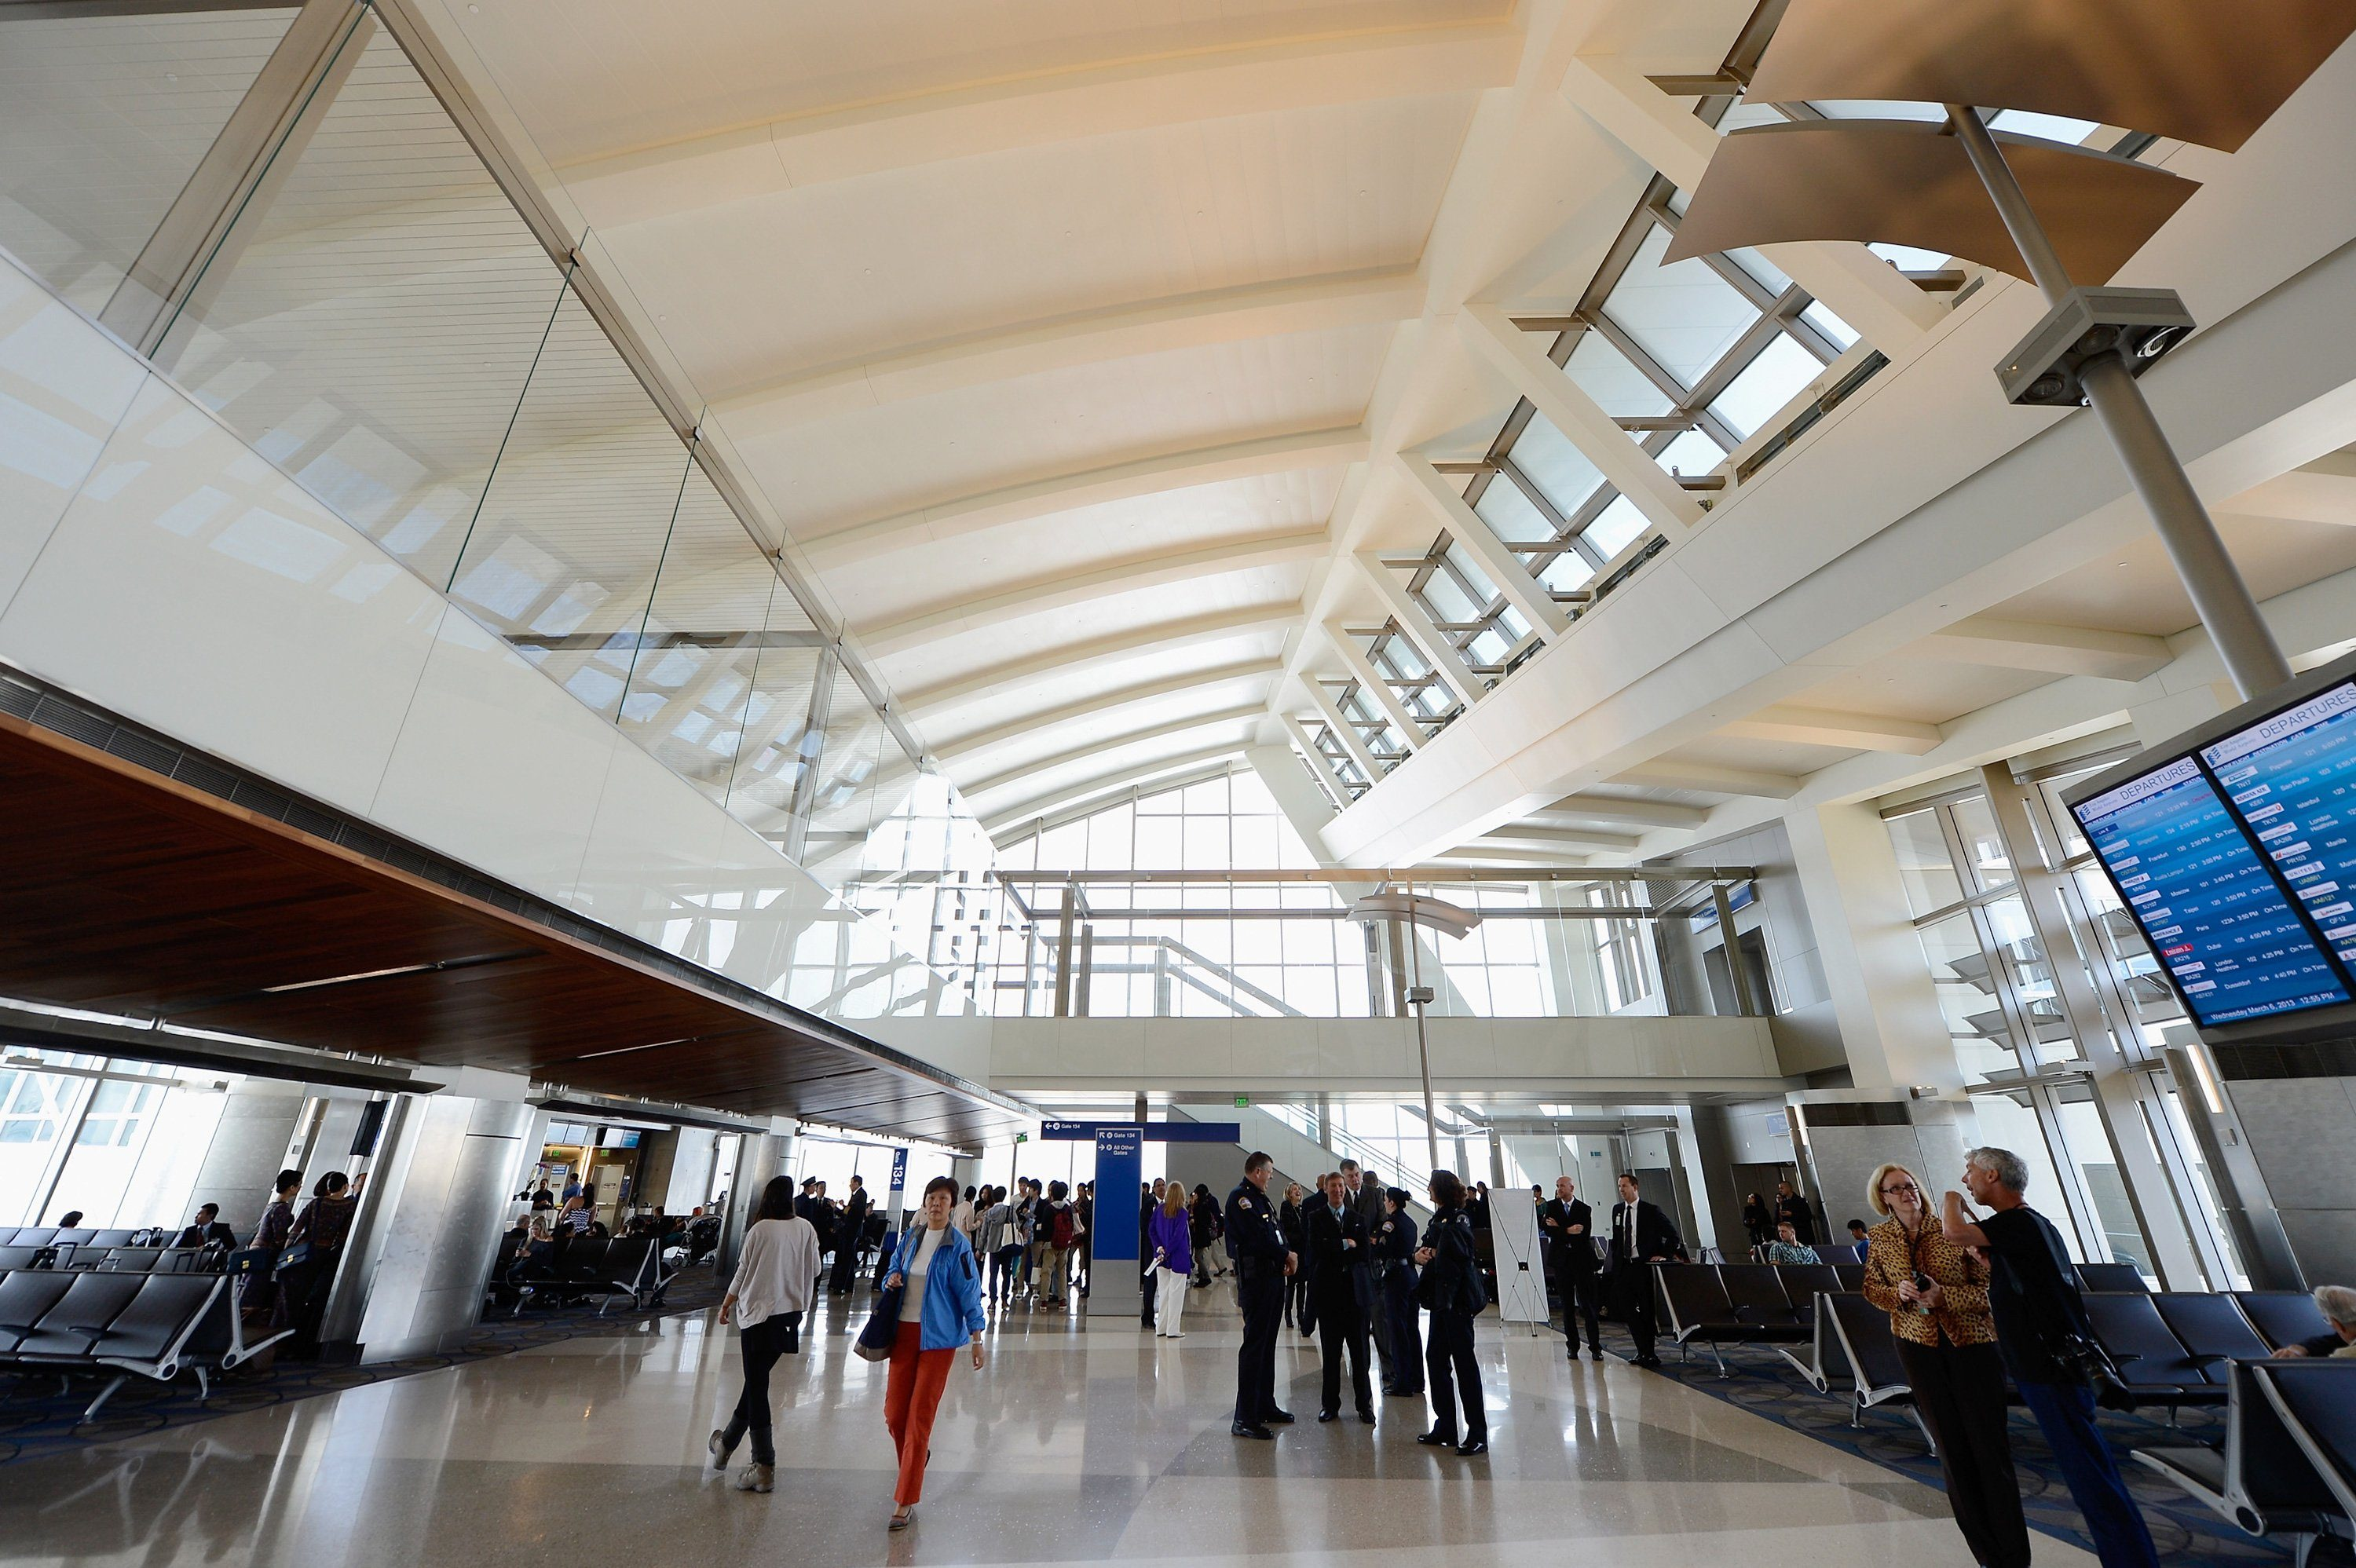 People walk through the north concourse of the new Tom Bradley International Terminal during its unveiling at Los Angeles International Airport on March 6, 2013 in Los Angeles, California.